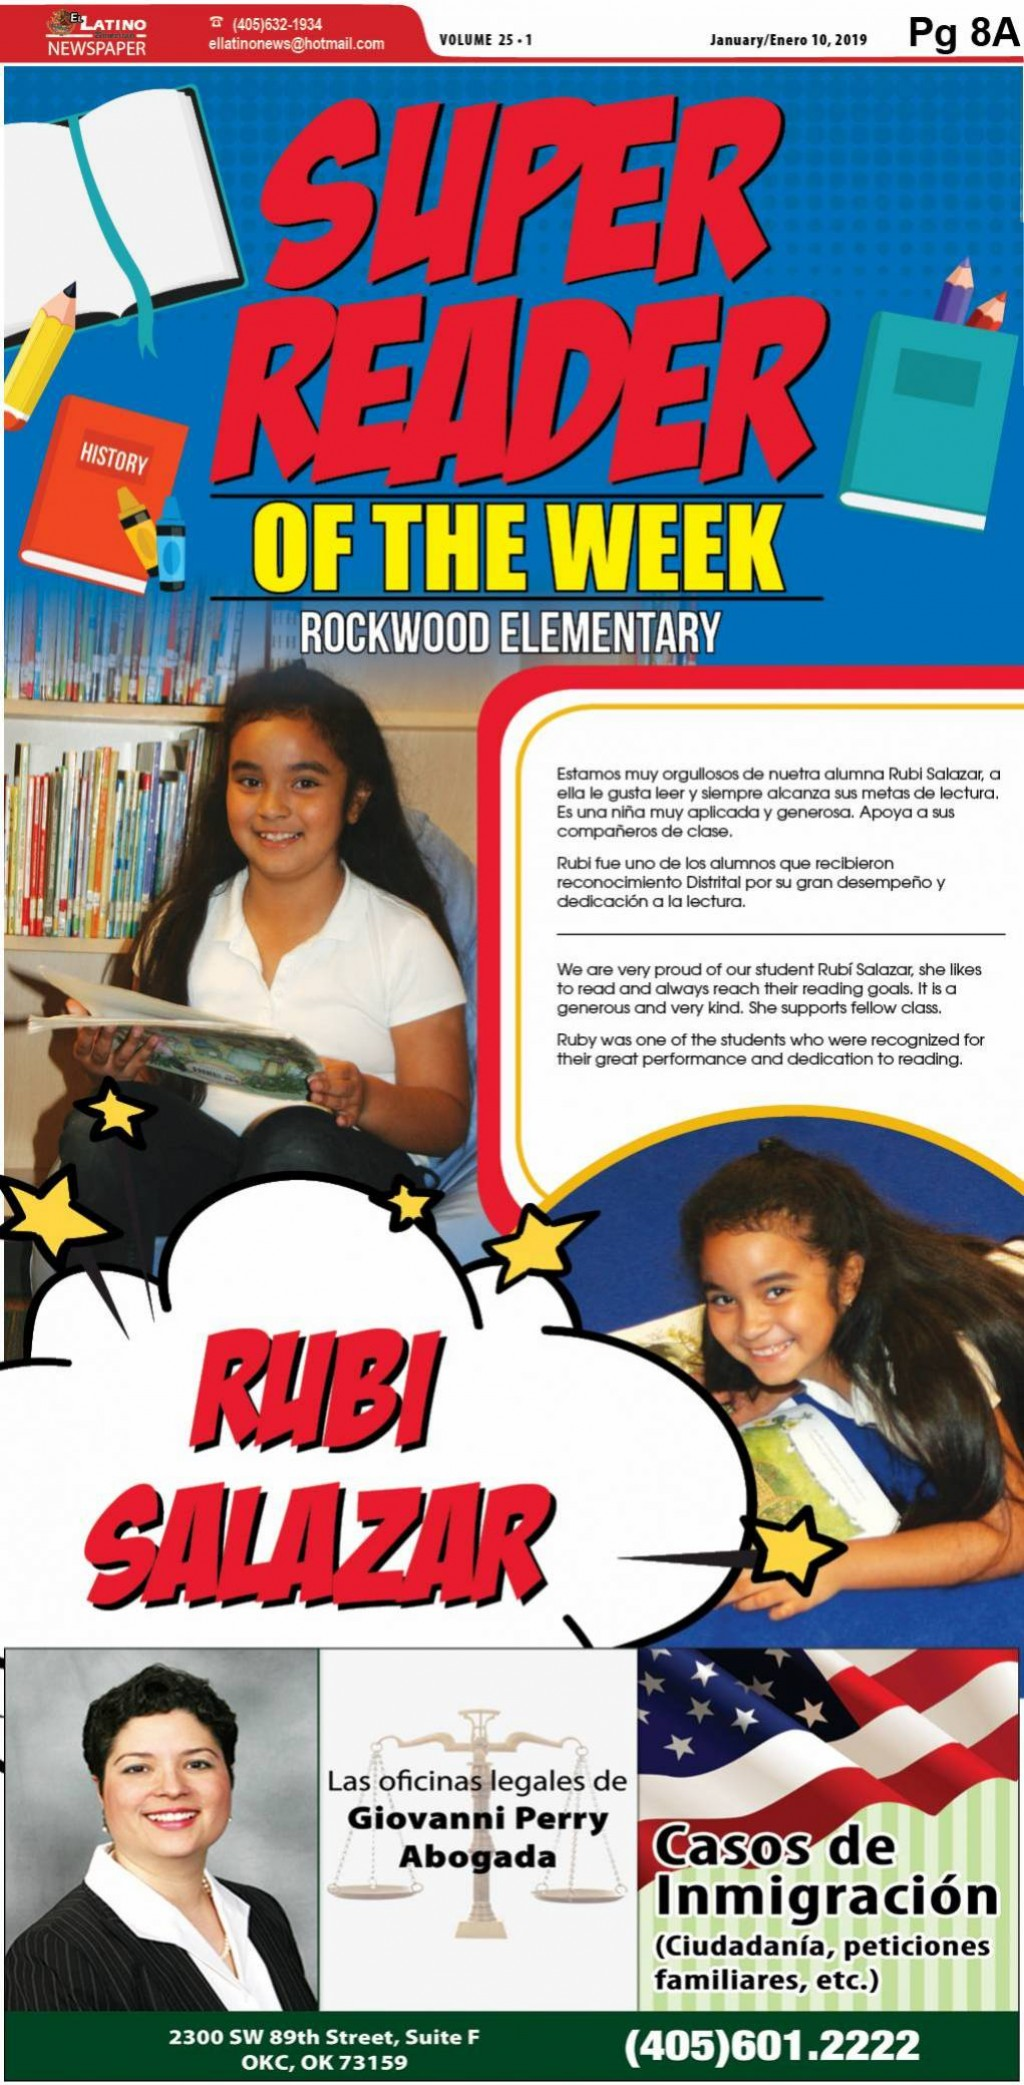 Super Reader of the Week: Rubi Salazar